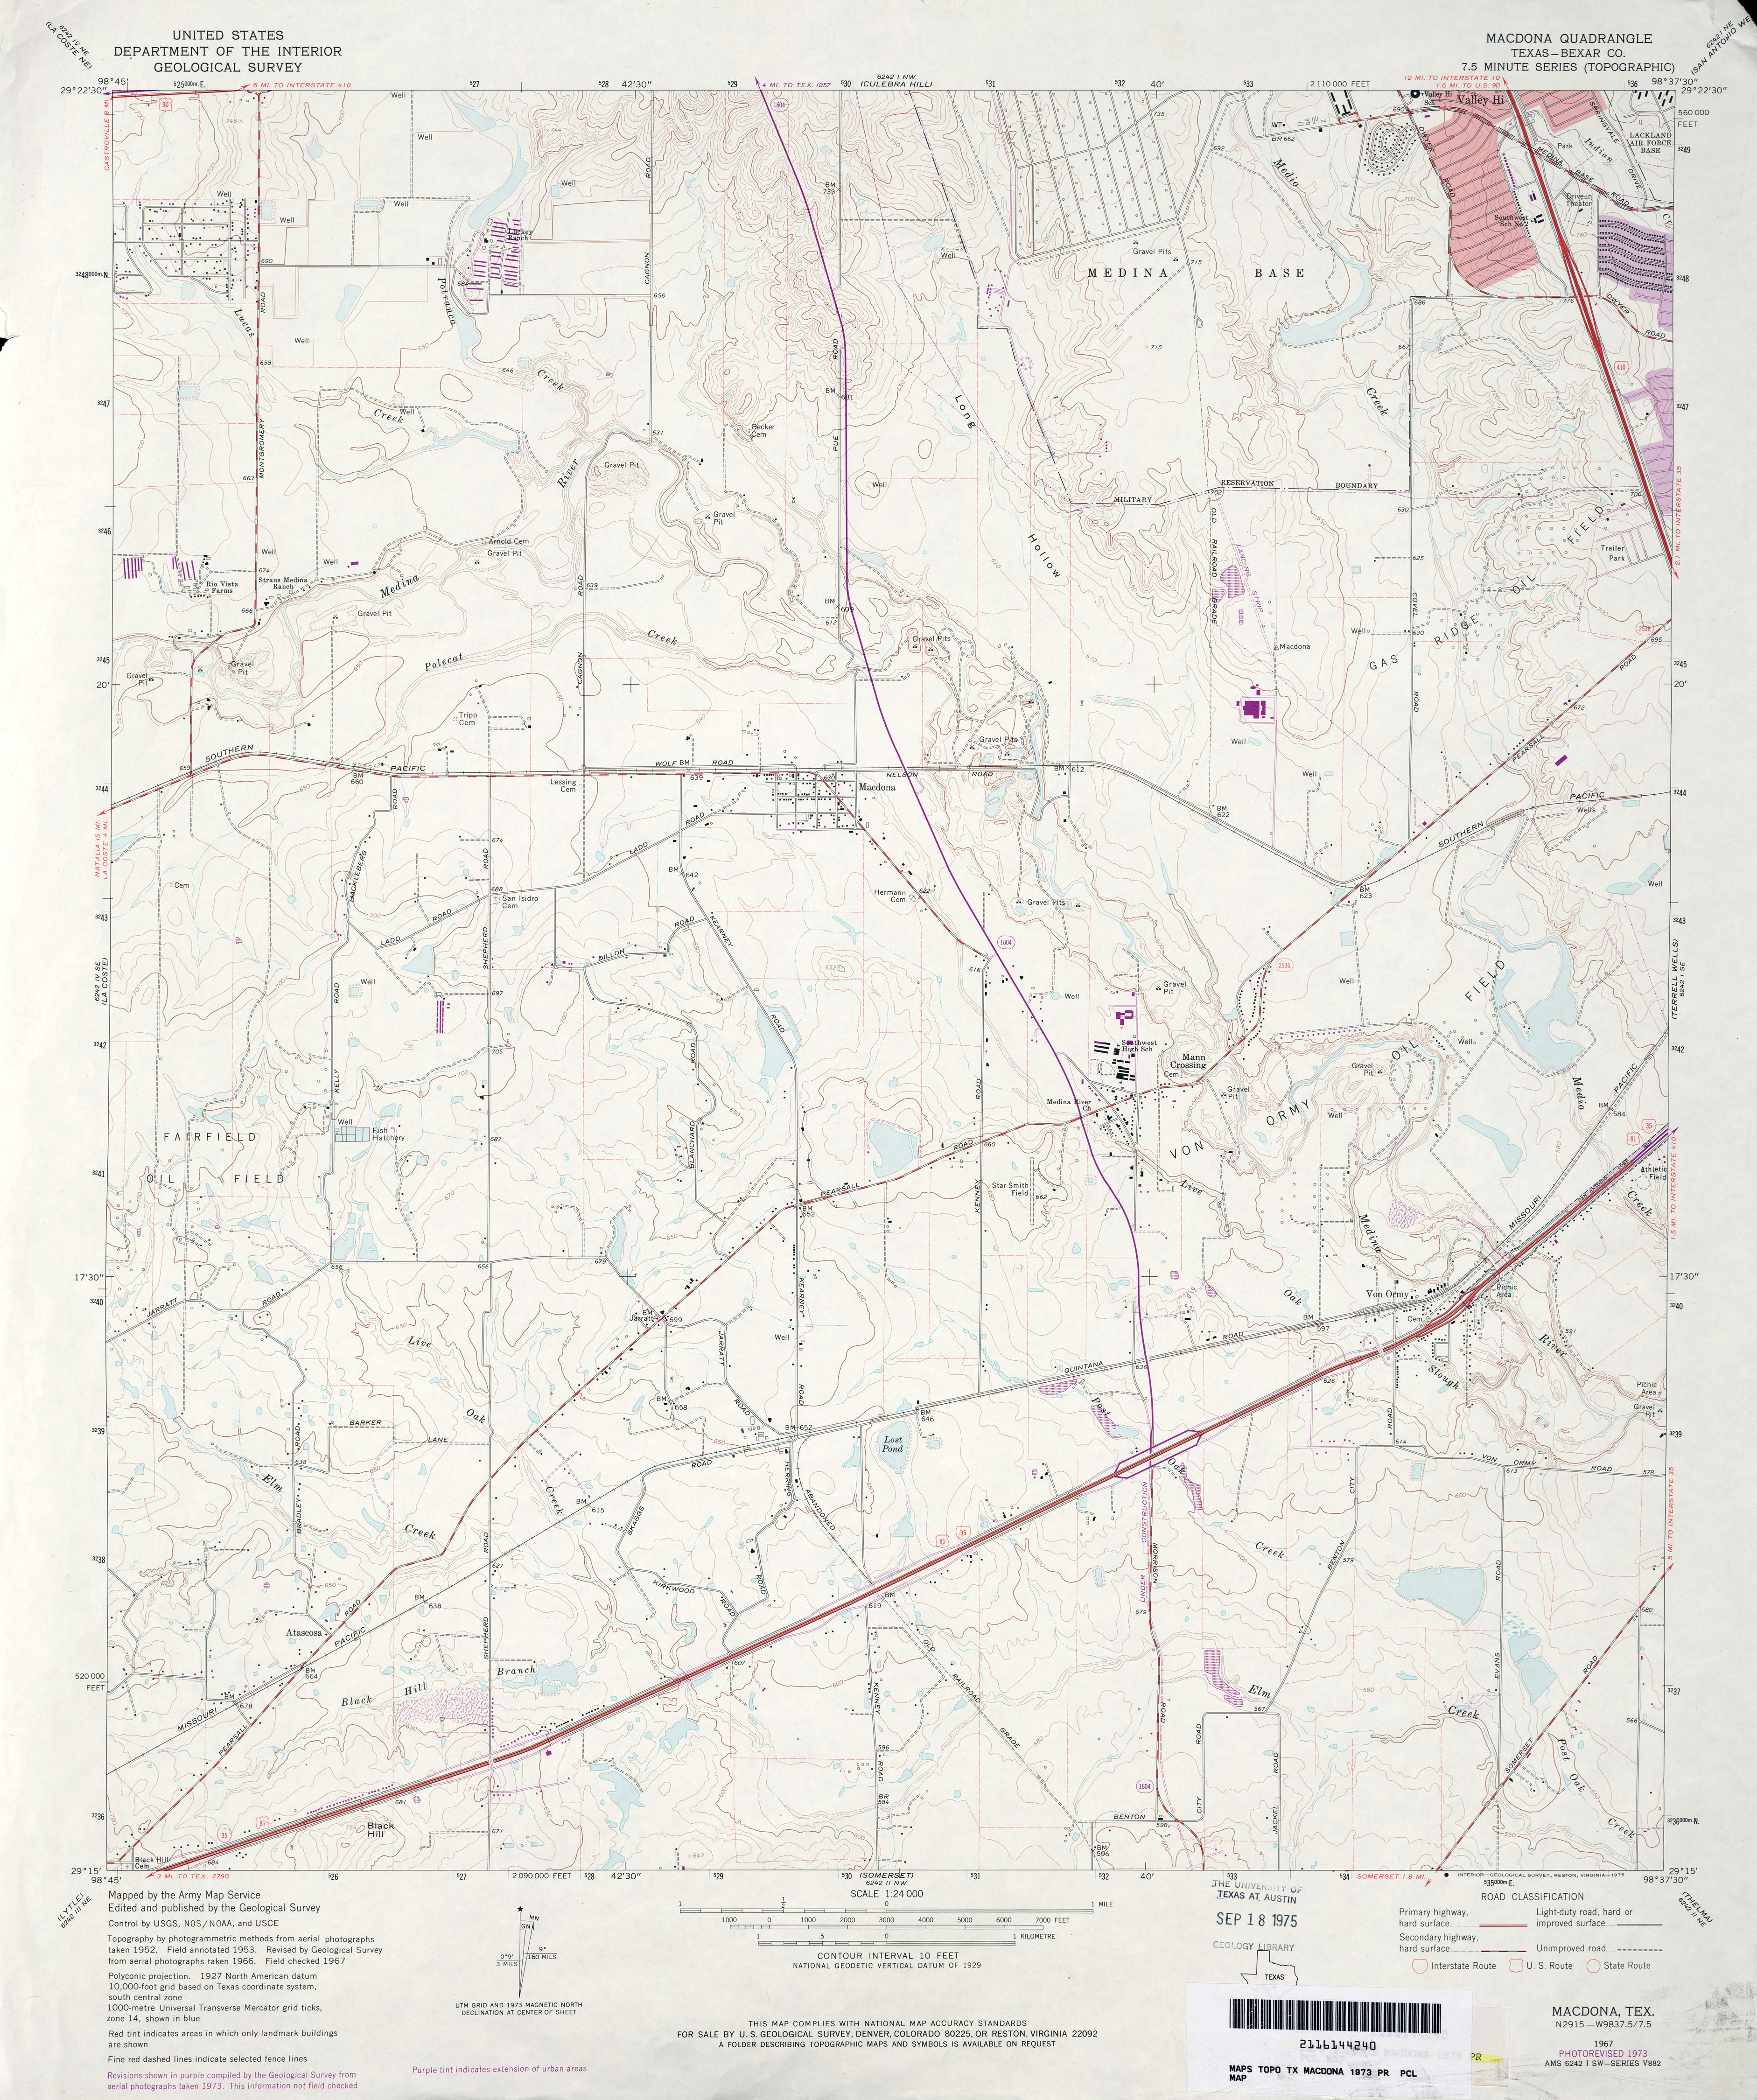 Texas Topographic Maps - Perry-Castañeda Map Collection - Ut Library - Reeves County Texas Plat Maps